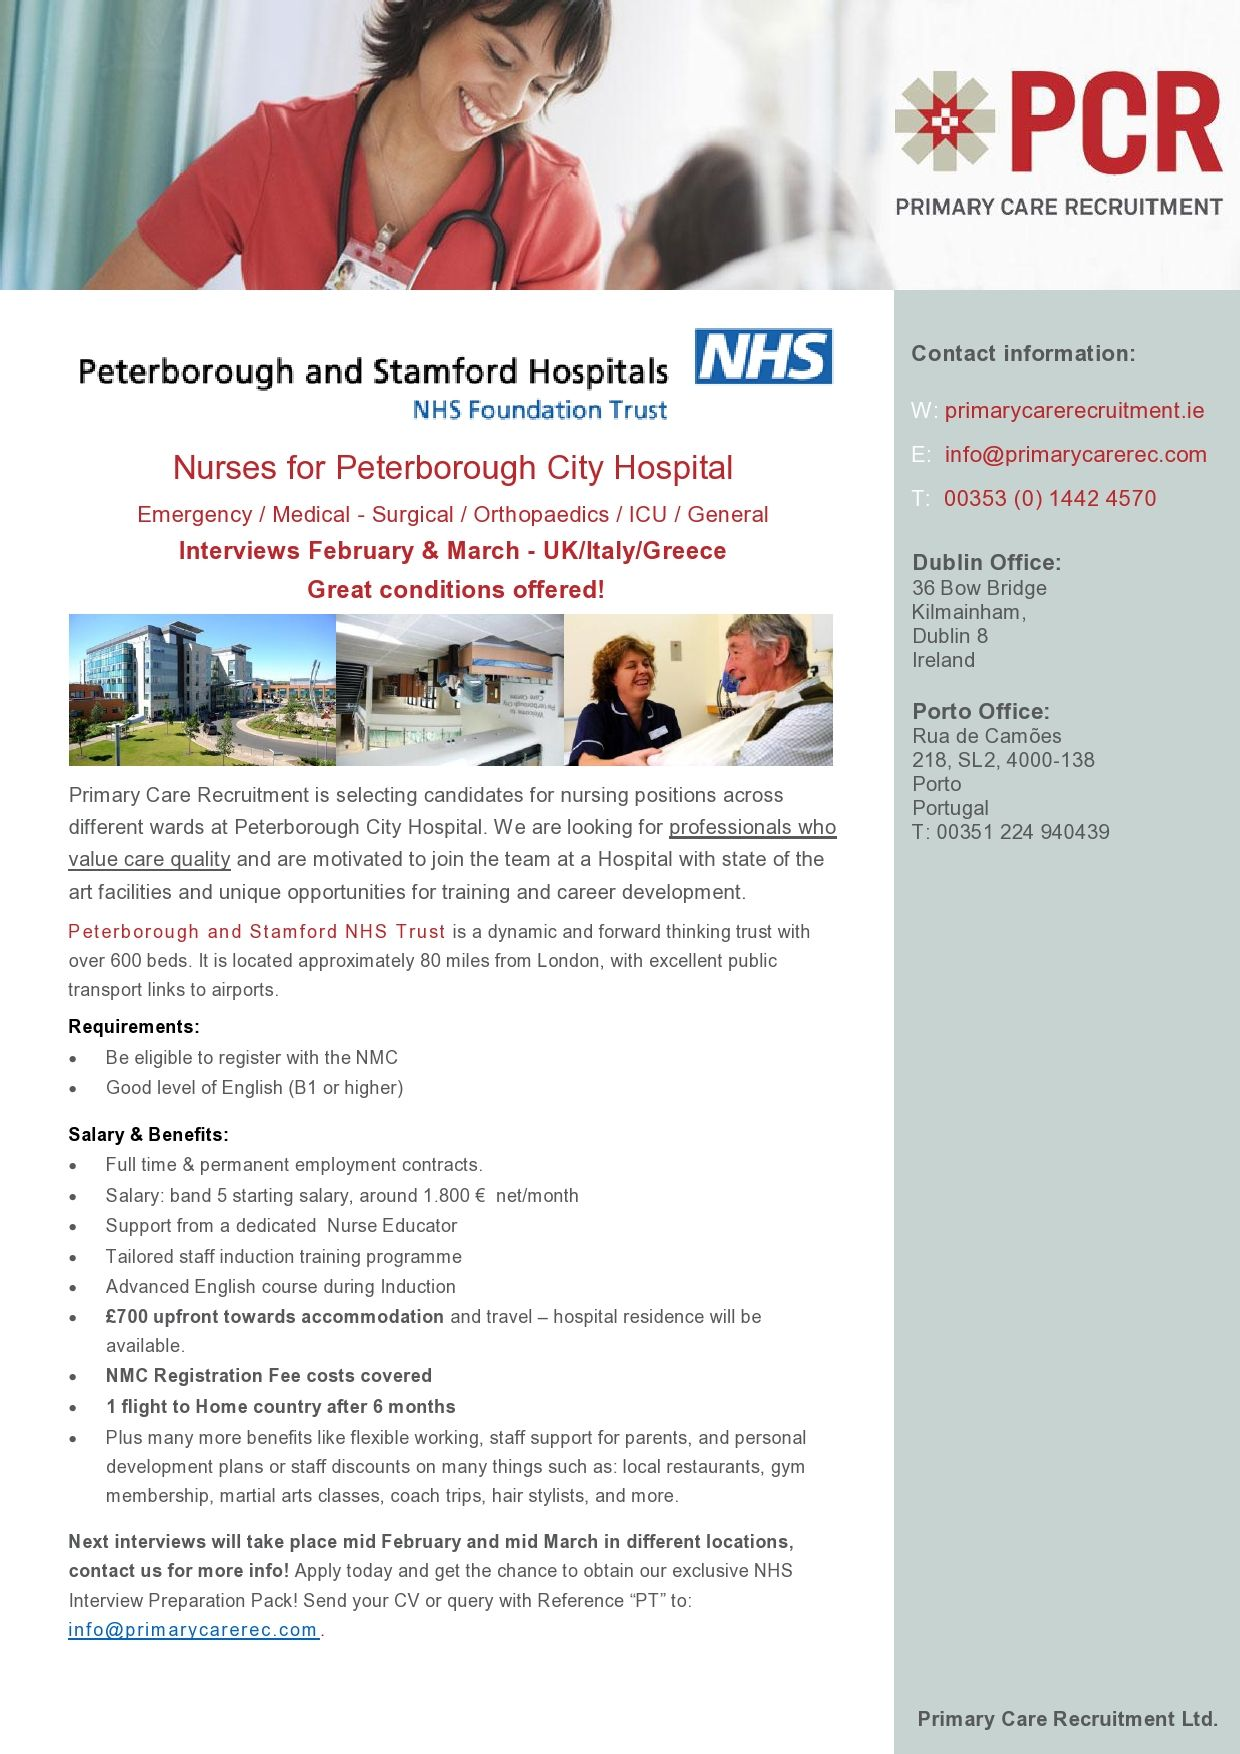 afe2448d1d0a30a02a30db40e243bc4b - How To Get A Job In The Nhs Without Experience